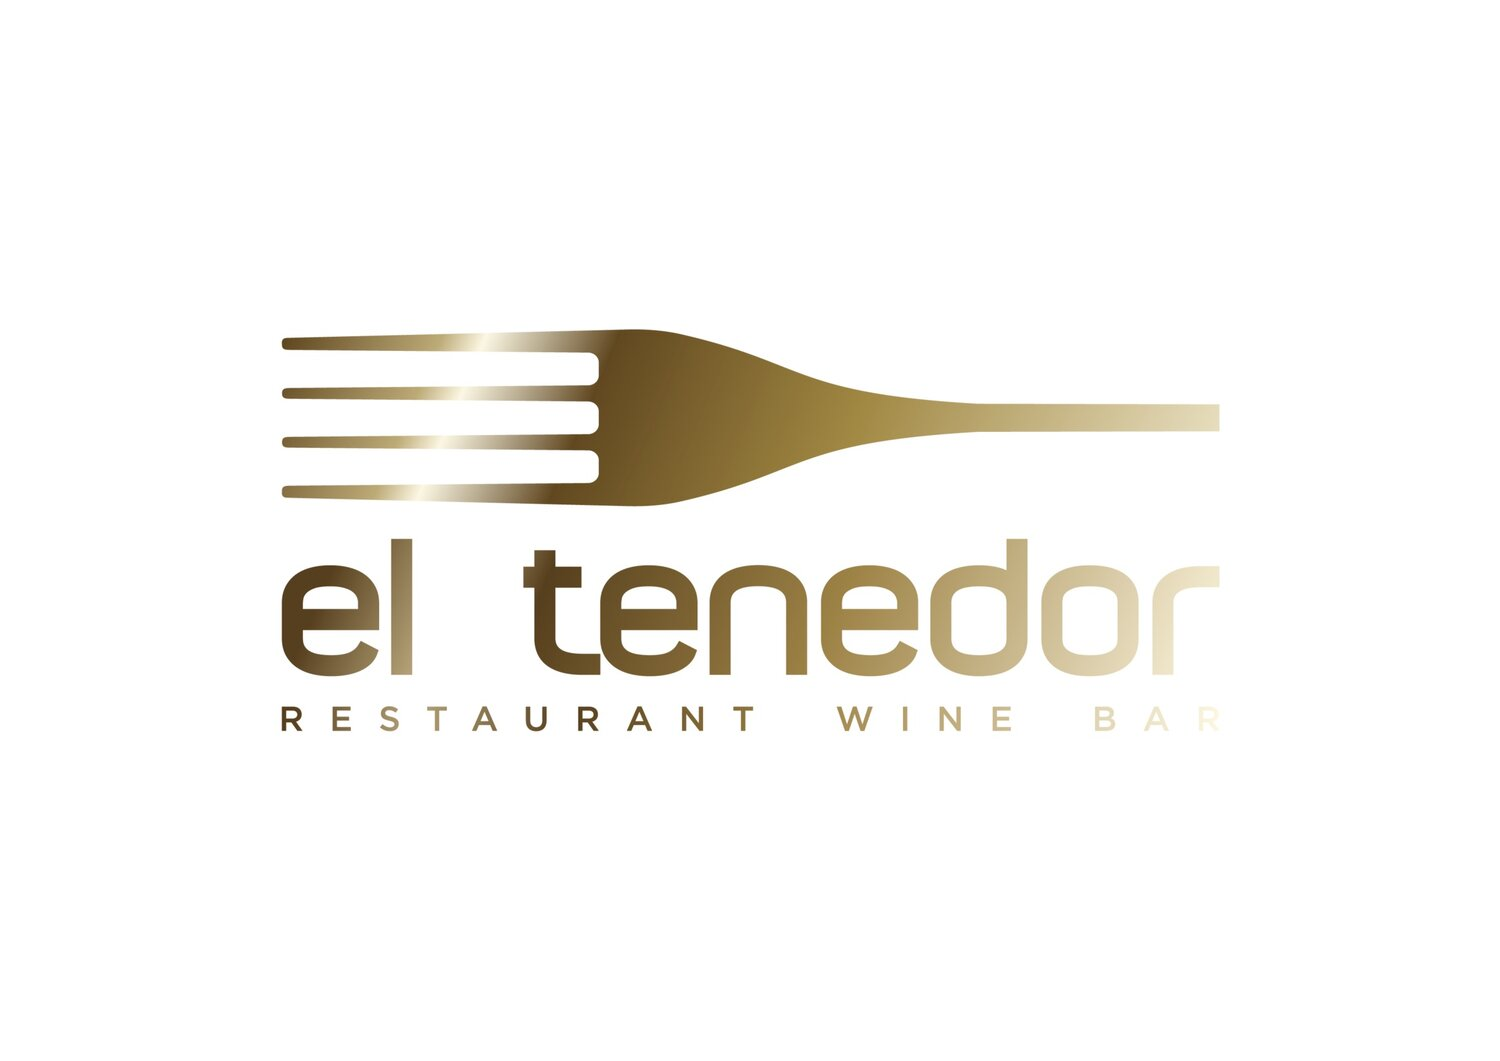 El Tenedor Restaurant Wine Bar